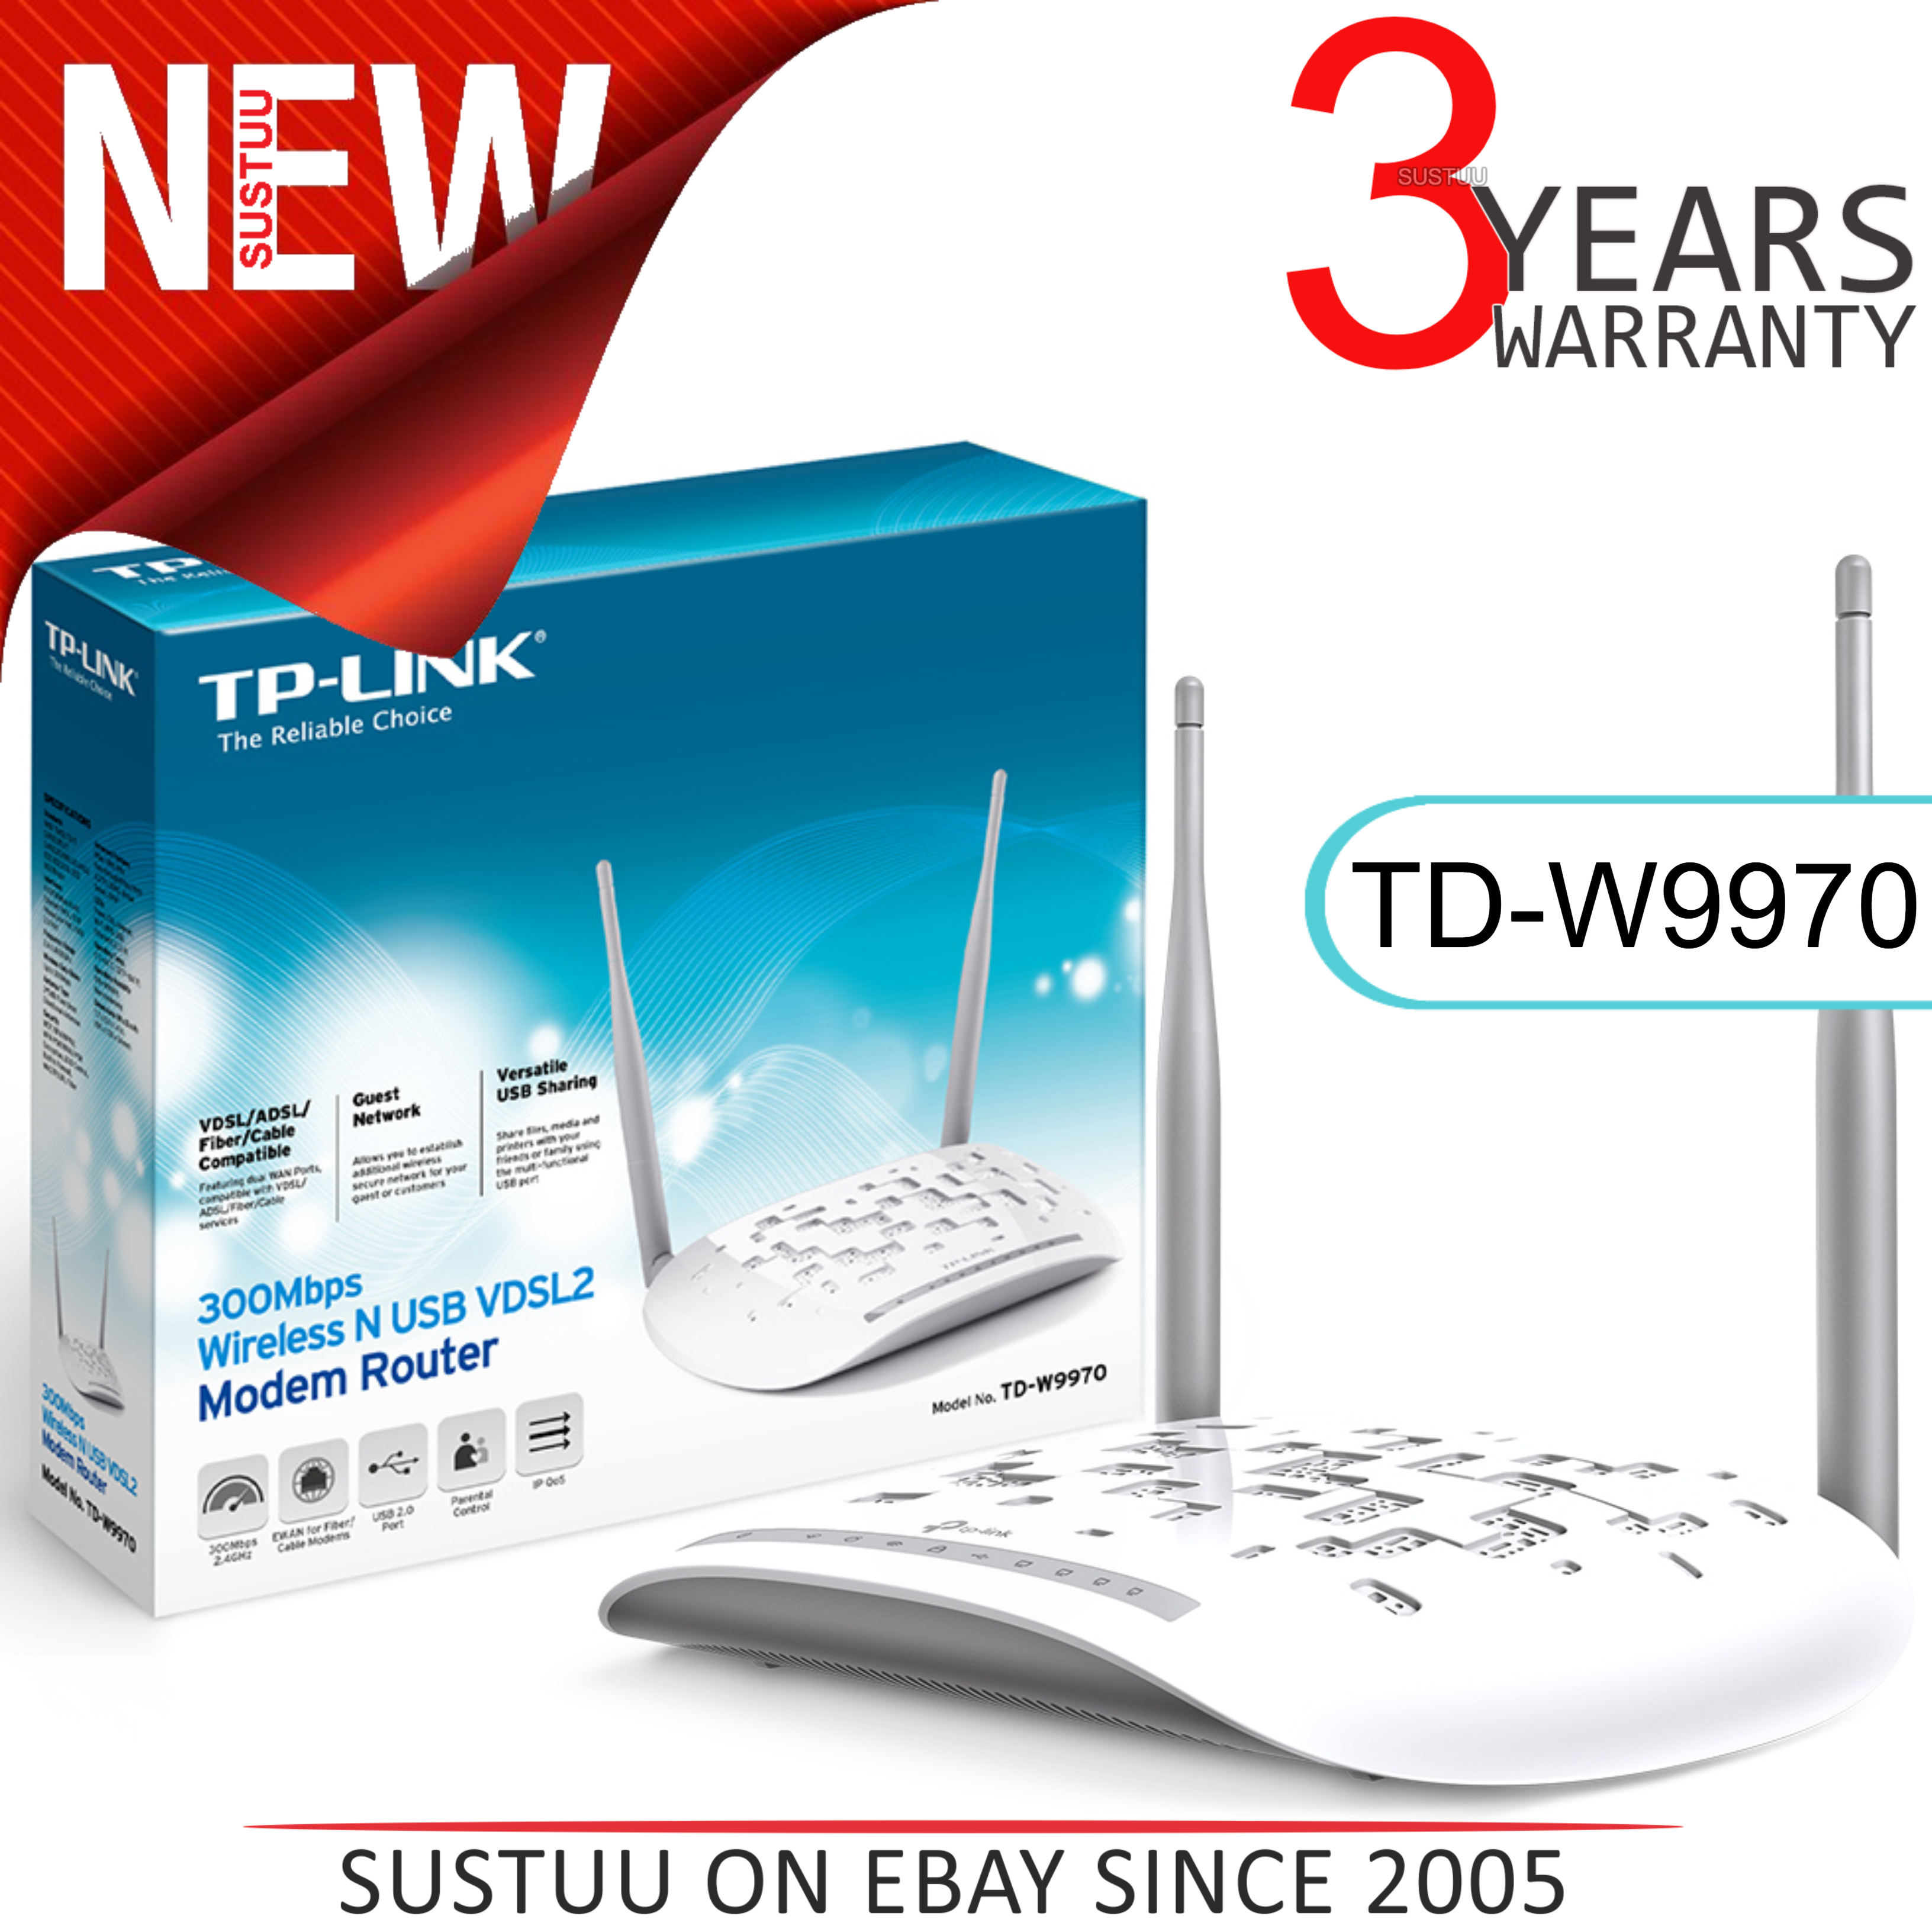 TP-LINK TD-W9970 ROUTER WINDOWS DRIVER